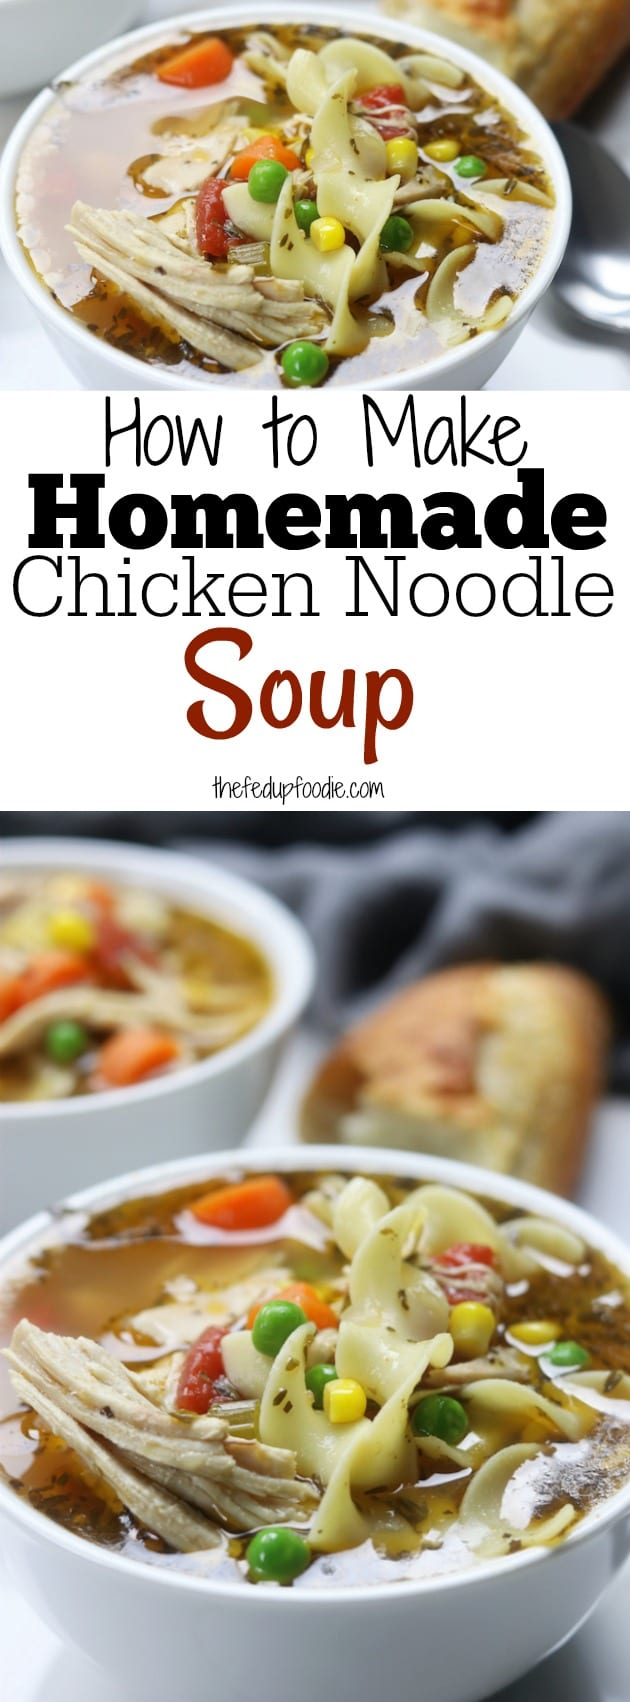 Homemade Chicken Noodle Soup recipe has easy steps to creating a rich and savory broth. Warm and comforting, feels like home with every bite. This recipe is a must for soothing the winter colds. #soup #chickennoodle #homemade https://www.thefedupfoodie.com